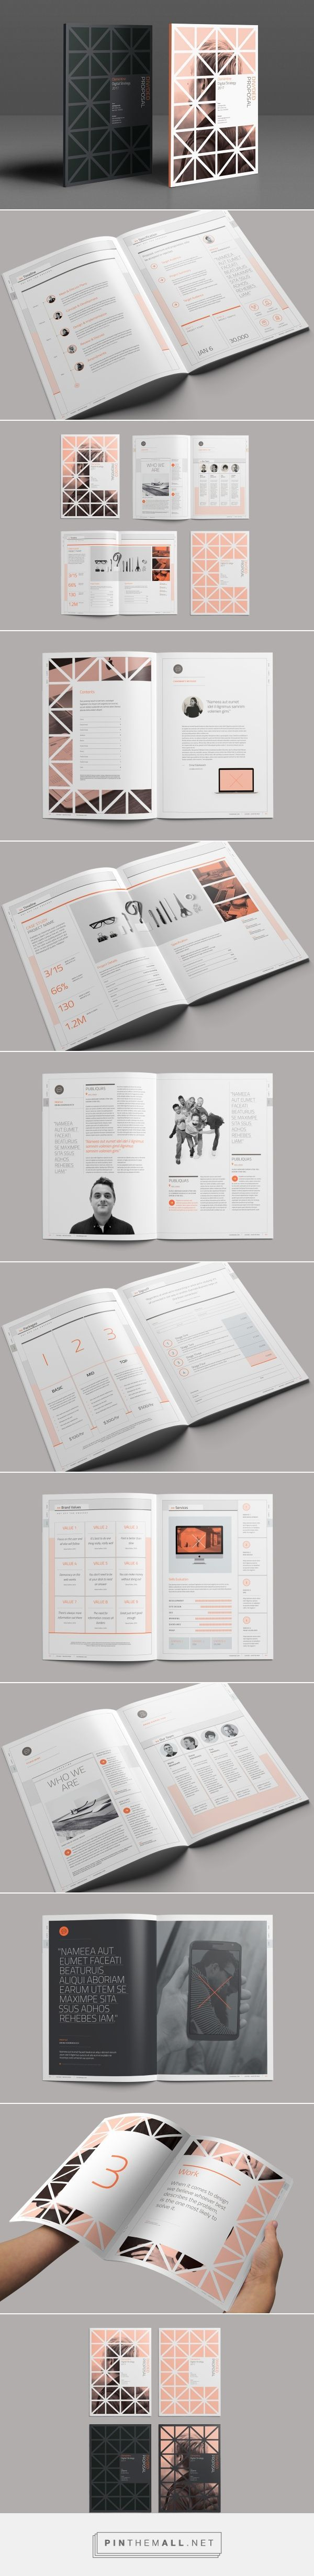 Divided Proposal on Behance